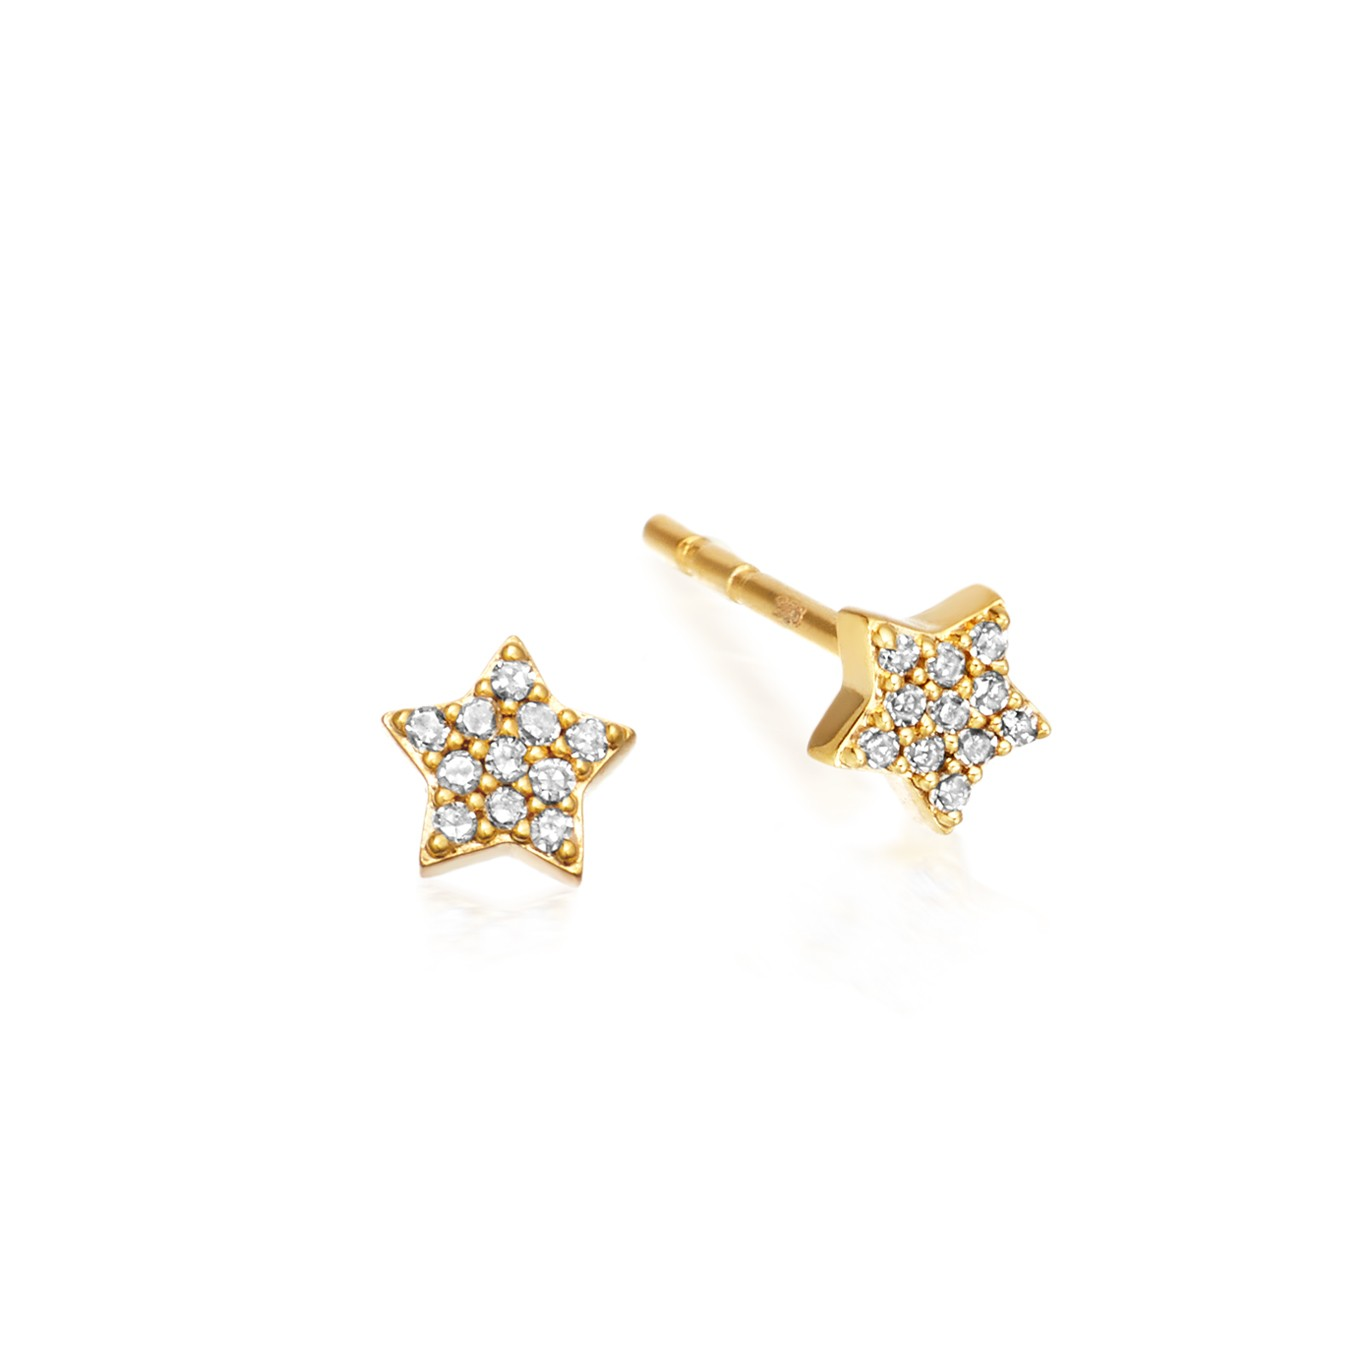 Astley Clarke Tiny Star Stud Earrings - British luxury jewellery - UK style blog